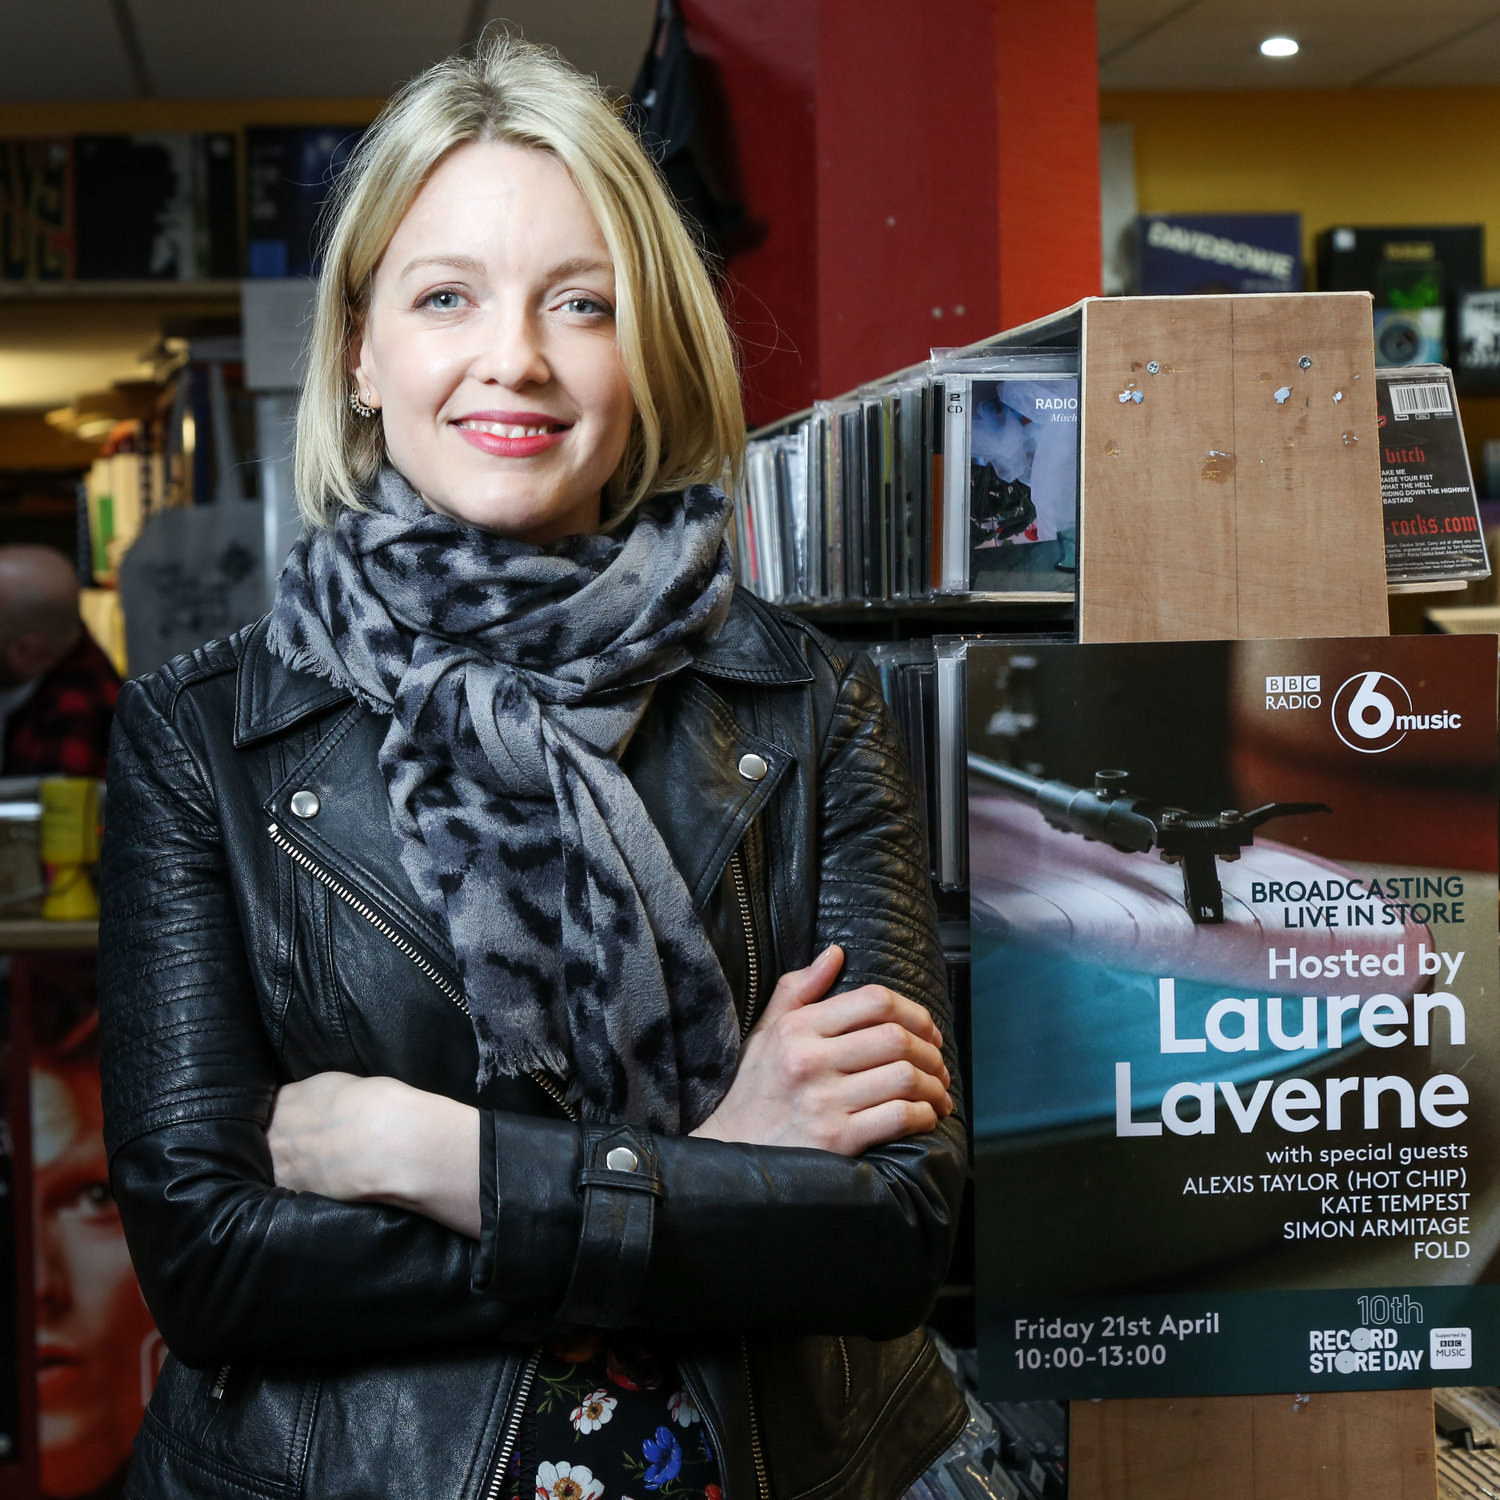 Lauren+Laverne+BBC+radio+6+music+record+store+day.jpg